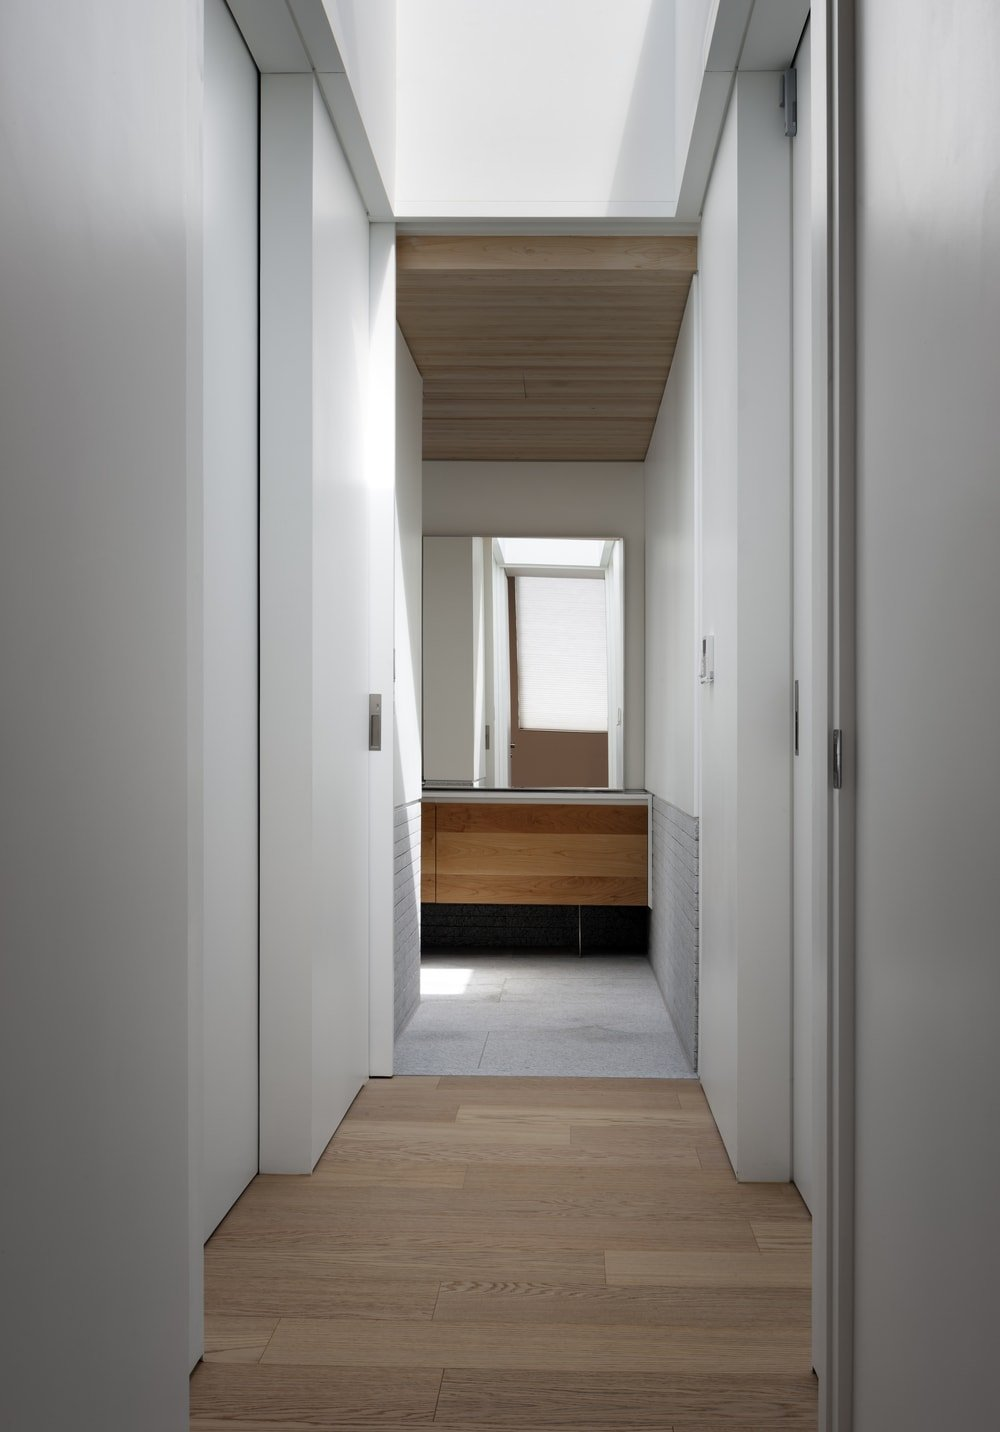 This is the hallway that leads to the bathroom with a view of the modern vanity on the far end topped with a large mirror.